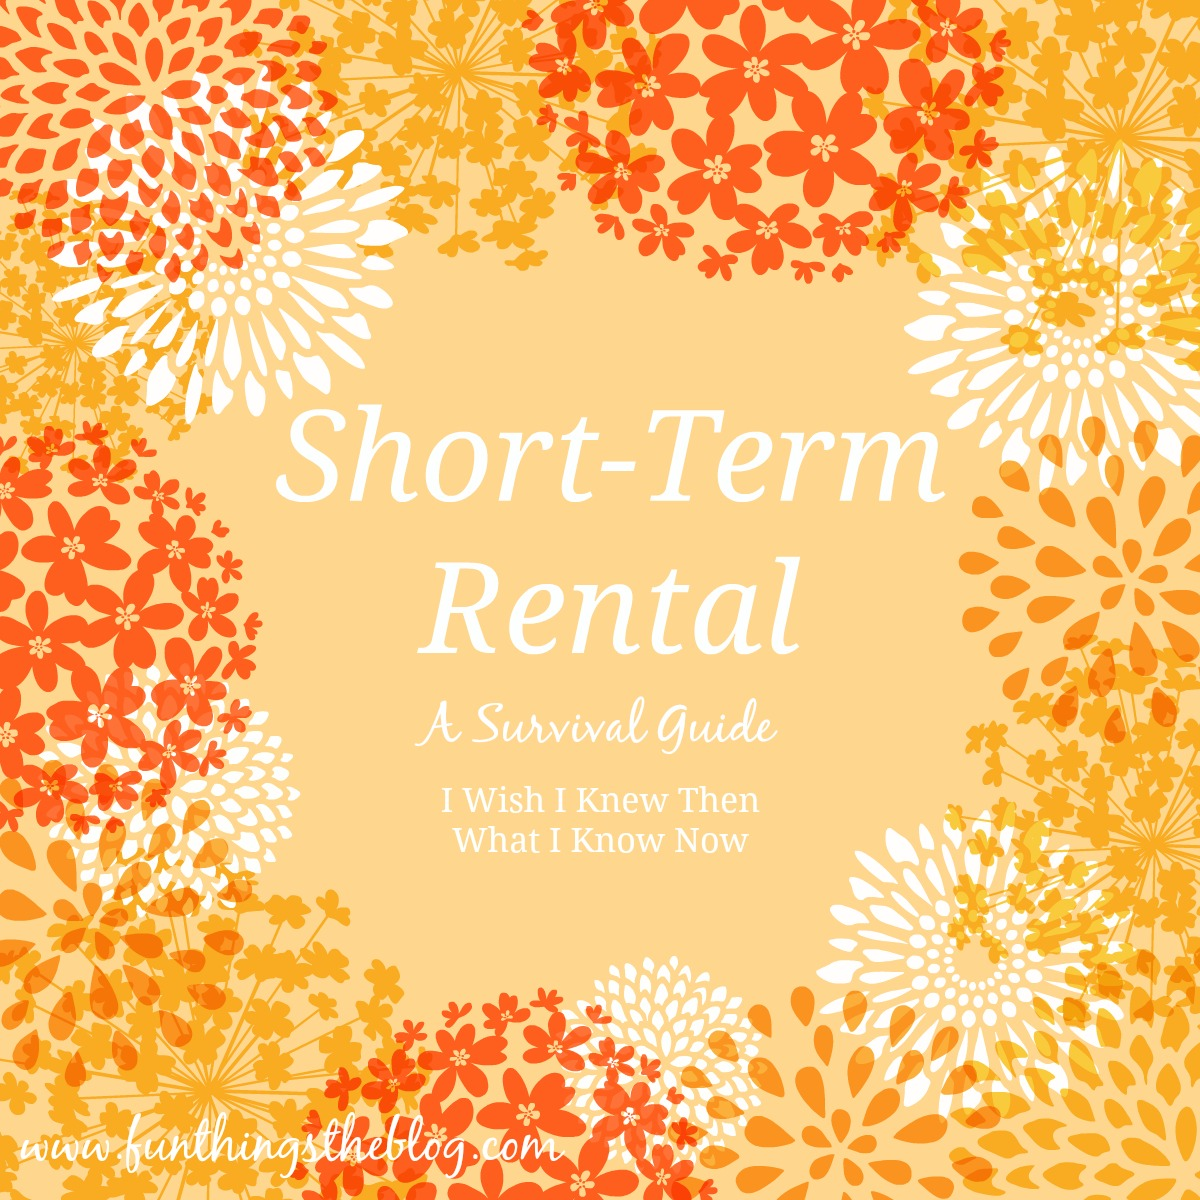 Short-Term Rental: A Survival Guide